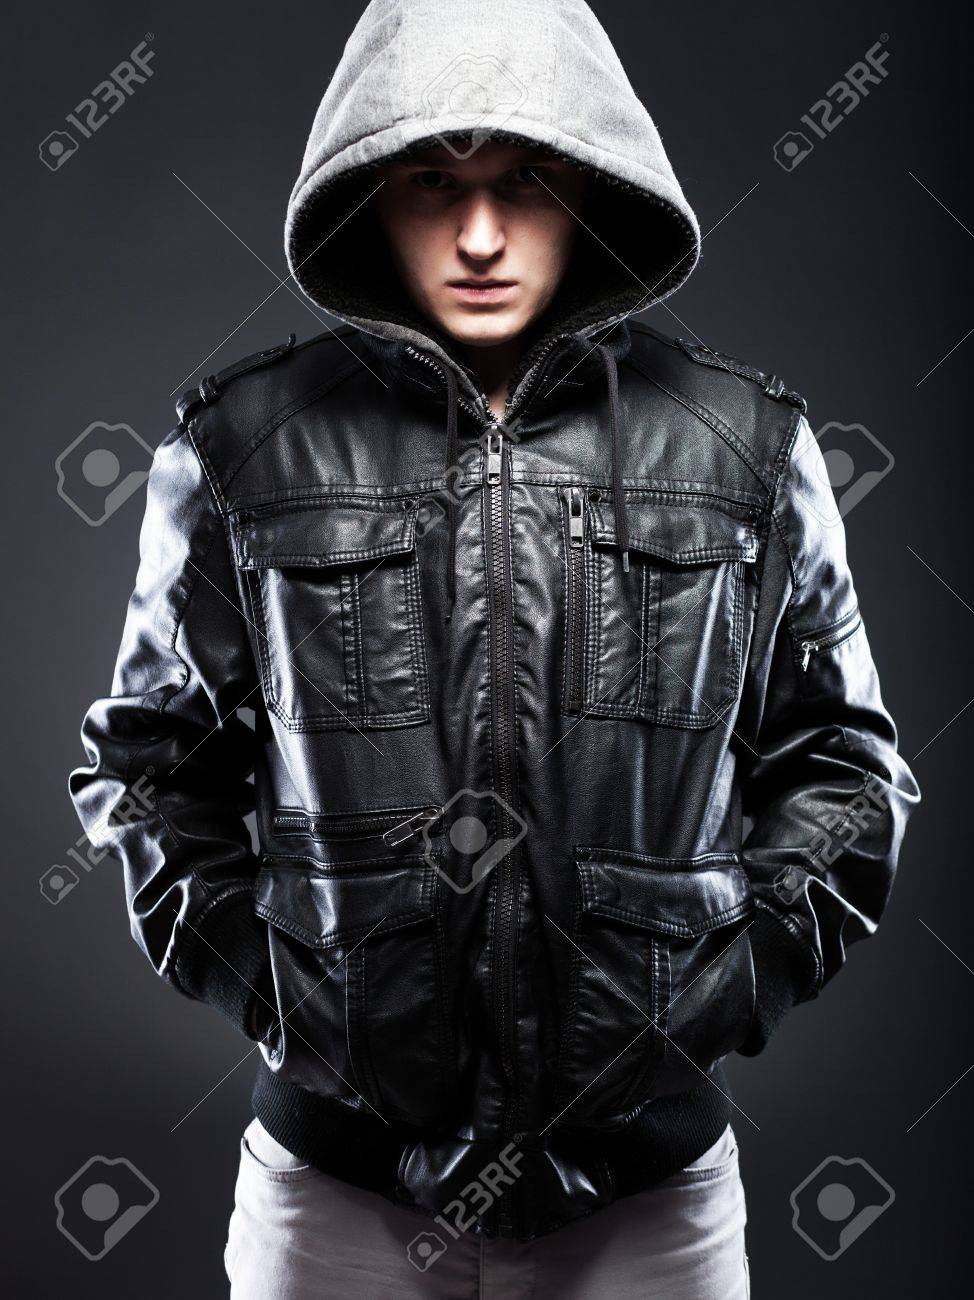 Obucite osobu iznad - Page 43 24811242-young-man-in-leather-jacket-with-a-hood-on-darkness-background